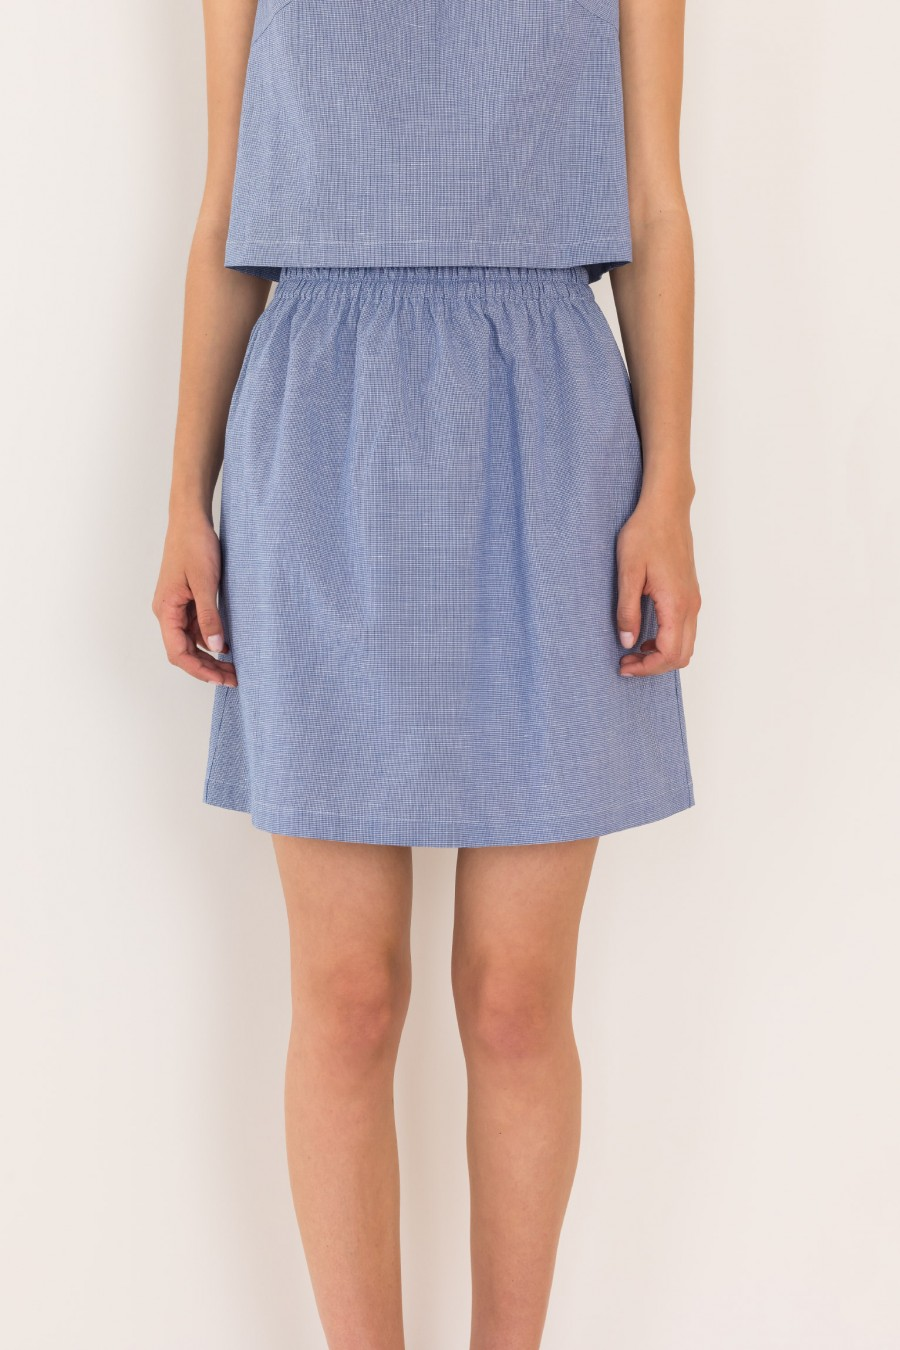 Skirt in linen and cotton